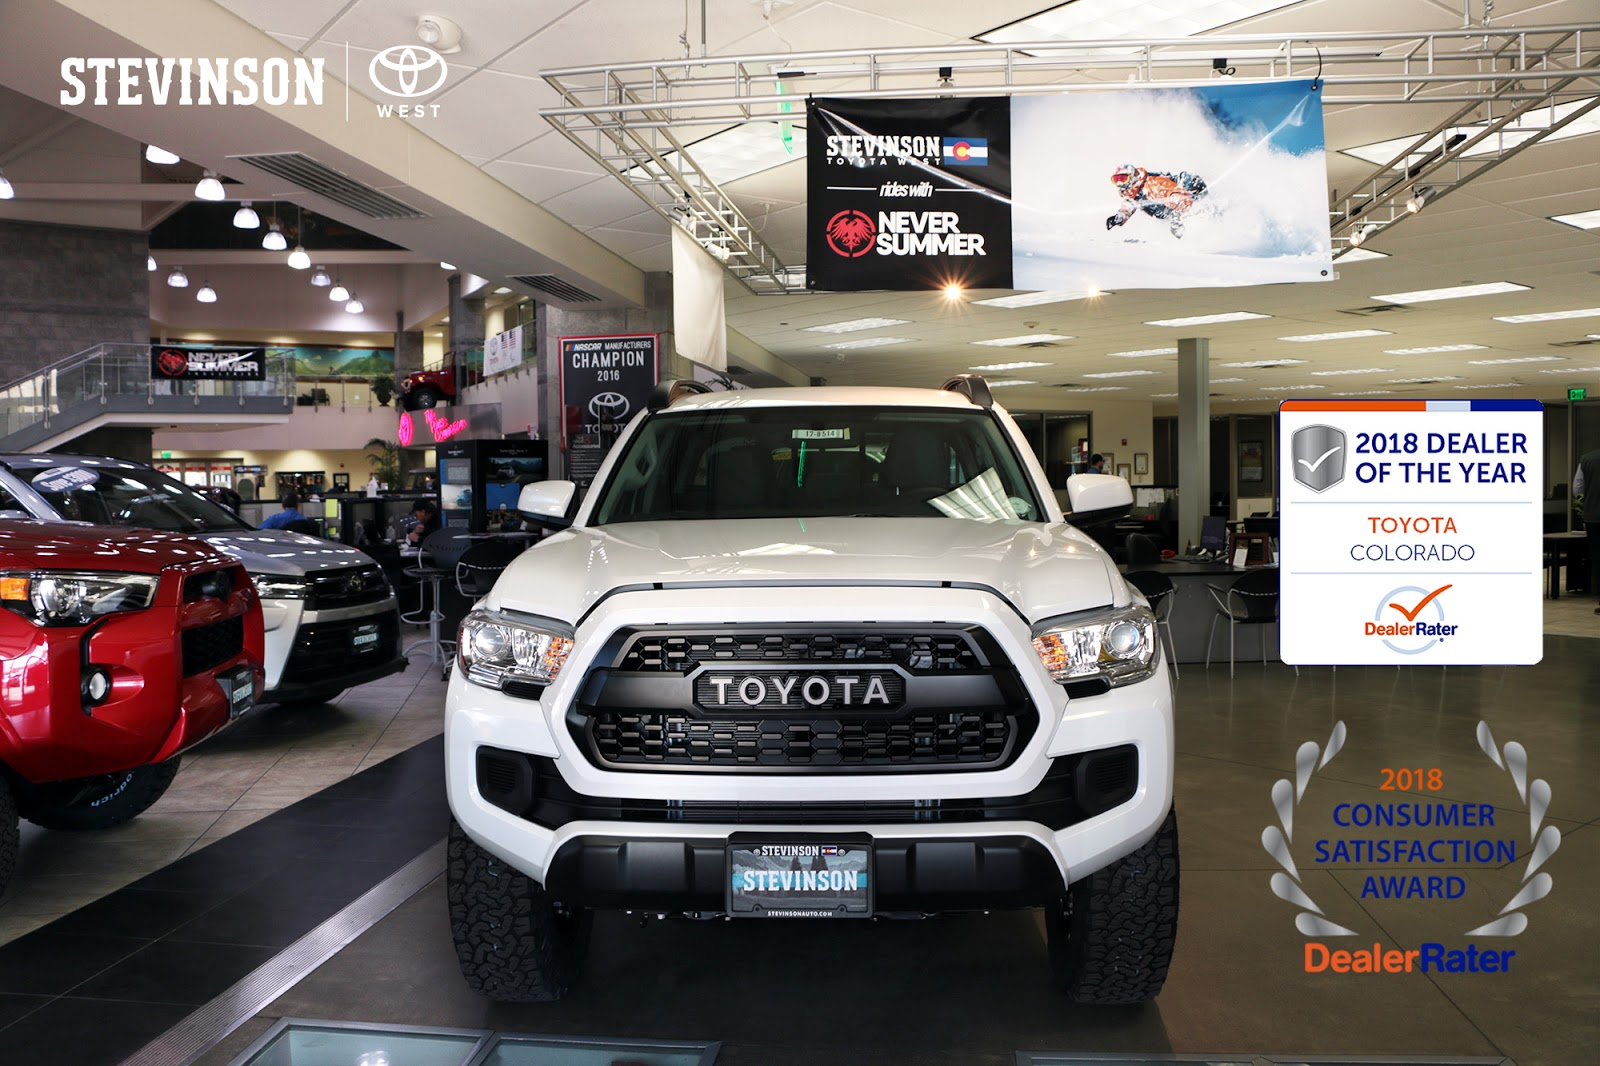 Stevinson Toyota West Awarded Dealerrater 2018 Dealer Of The Year Consumer Satisfaction Award